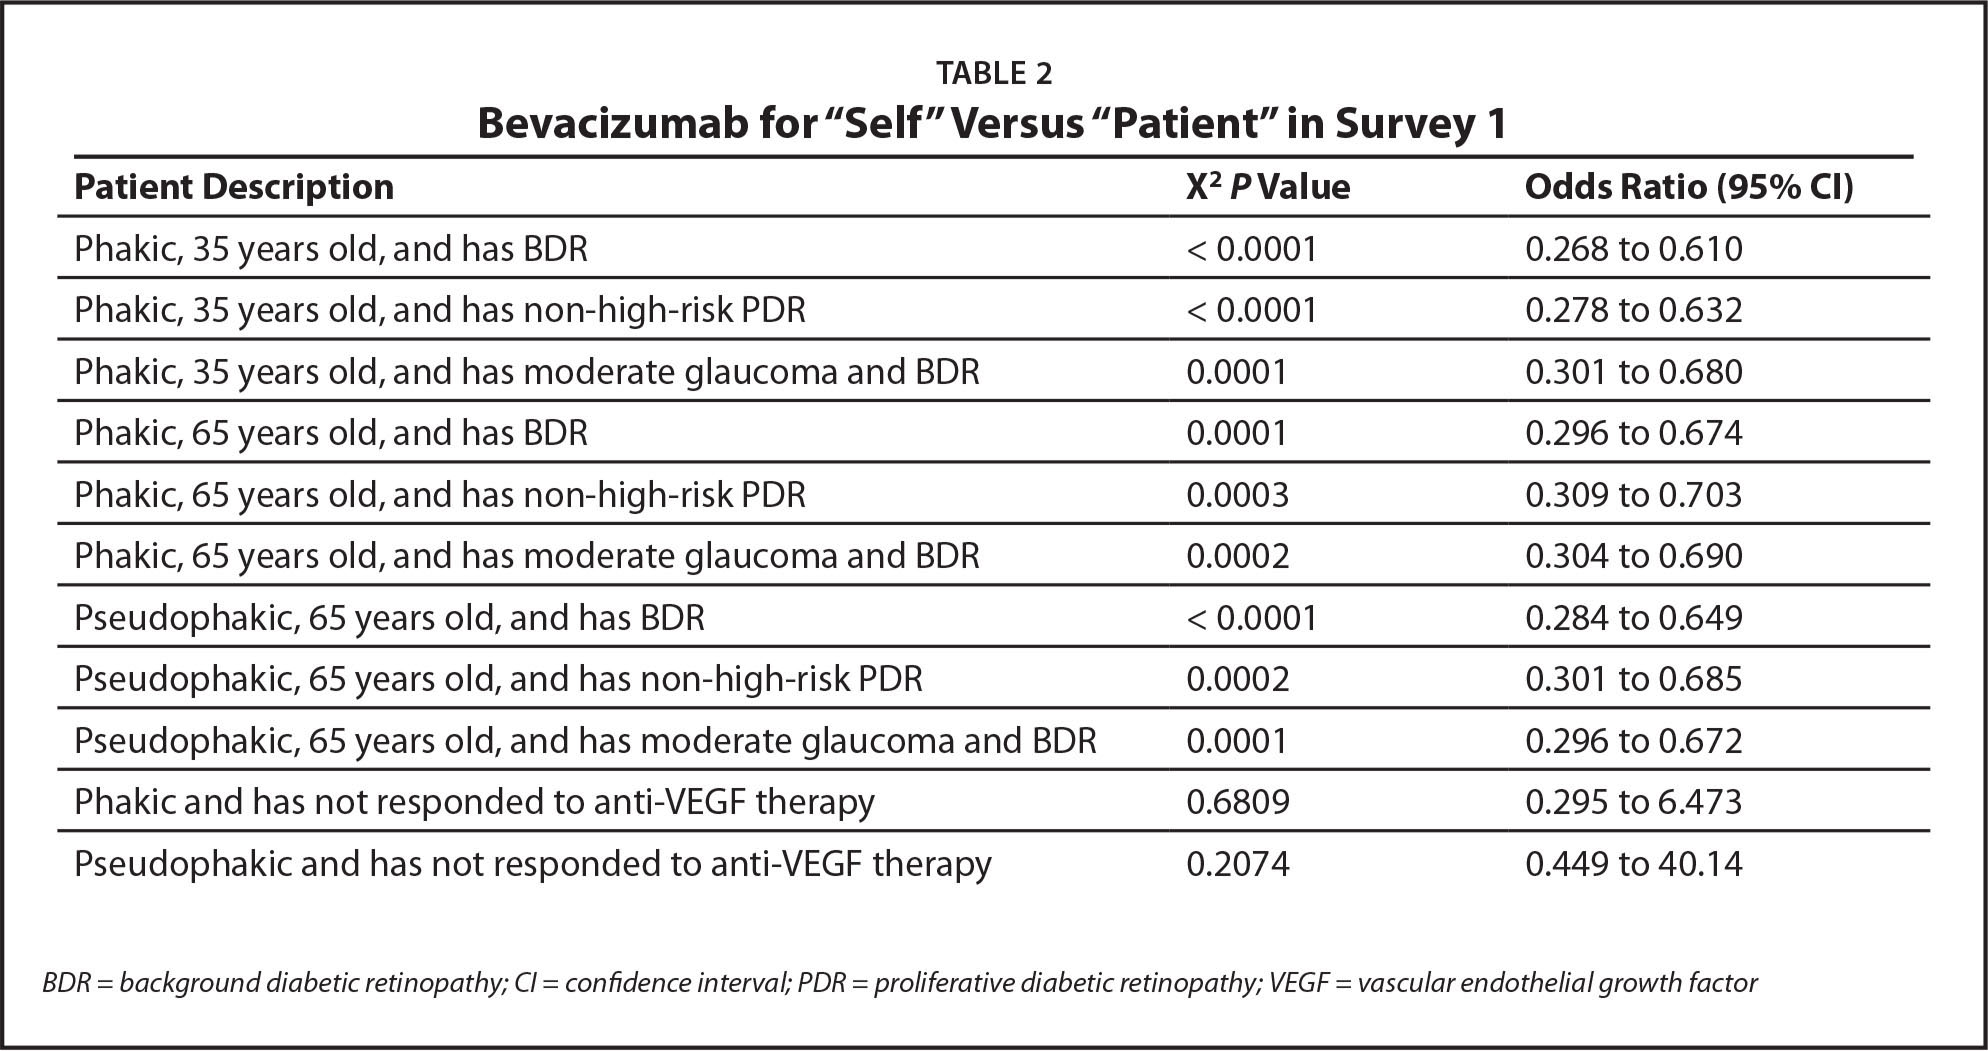 "Bevacizumab for ""Self"" Versus ""Patient"" in Survey 1"